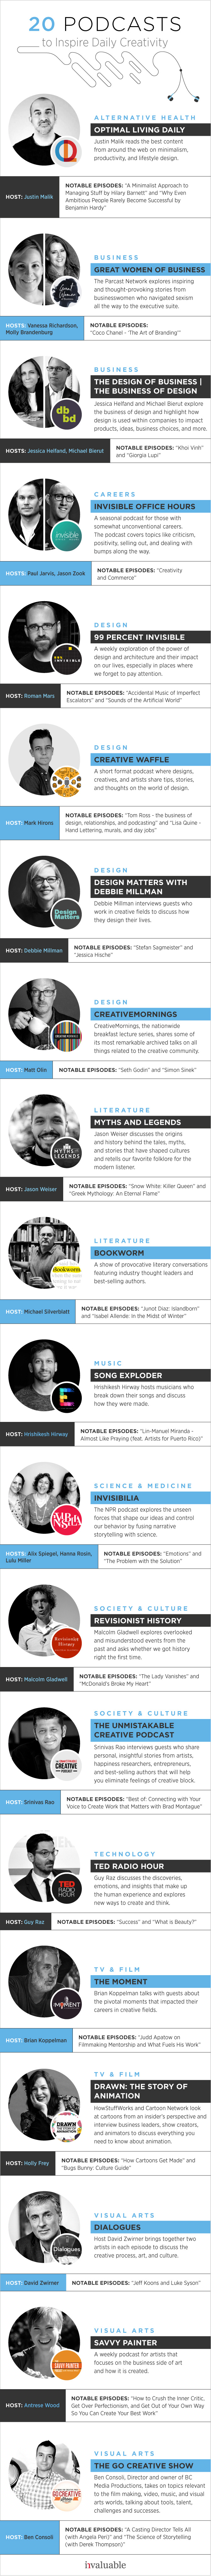 podcasts to inspire your creativity infographic